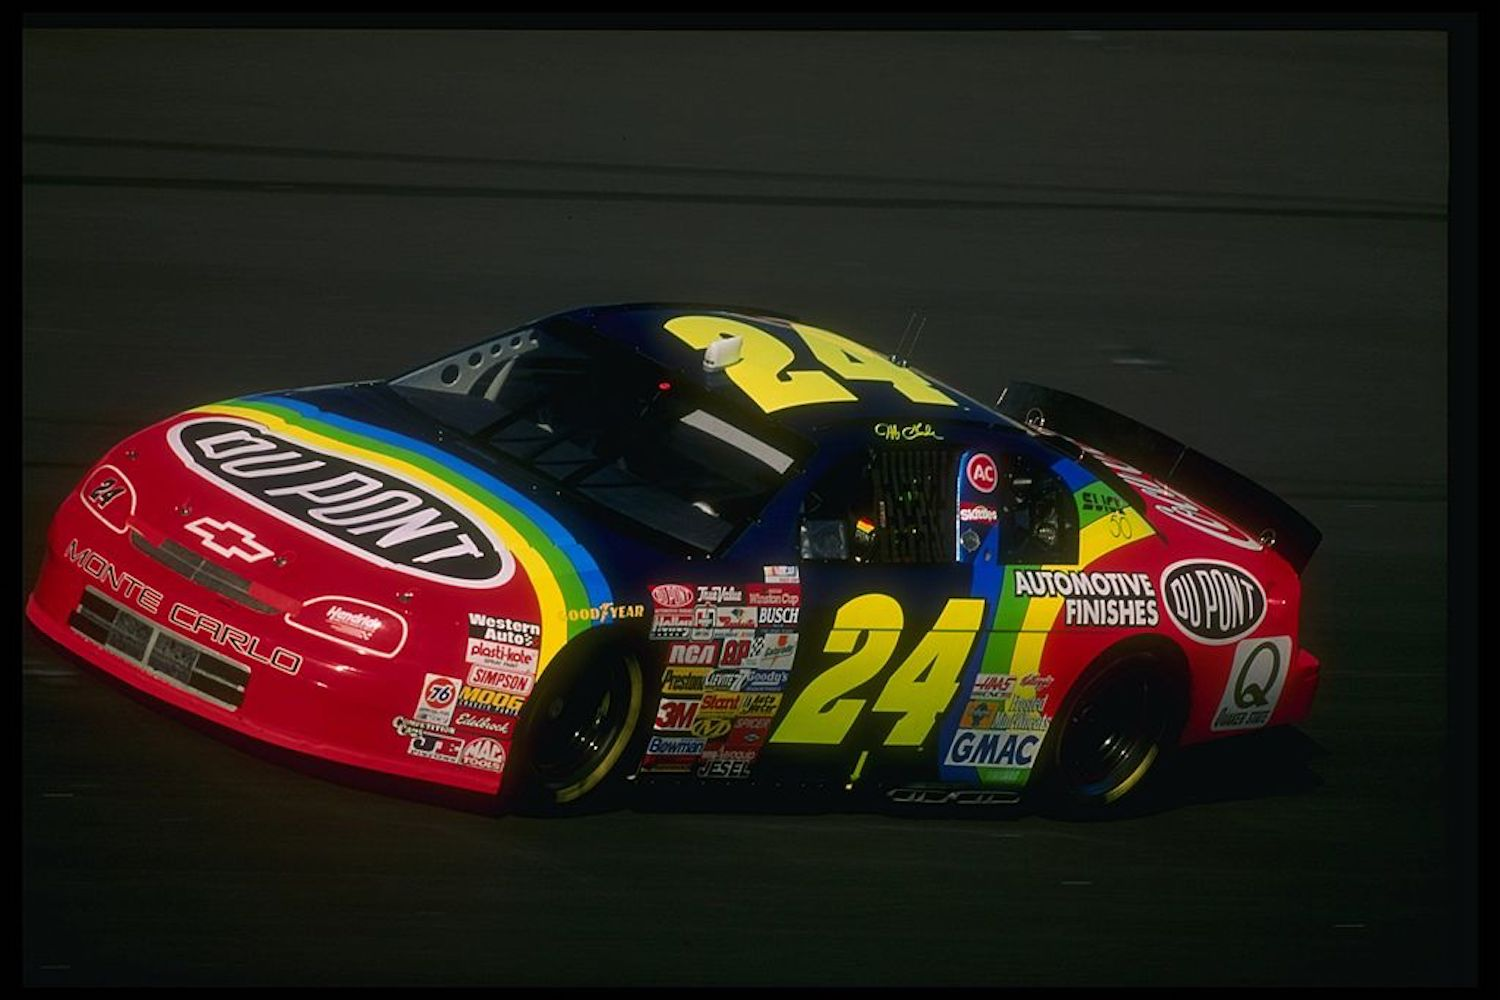 Jeff Gordon won three NASCAR races with his Chevrolet Monte Carlo in the mid-1990s, but his old race car was just put up for auction.